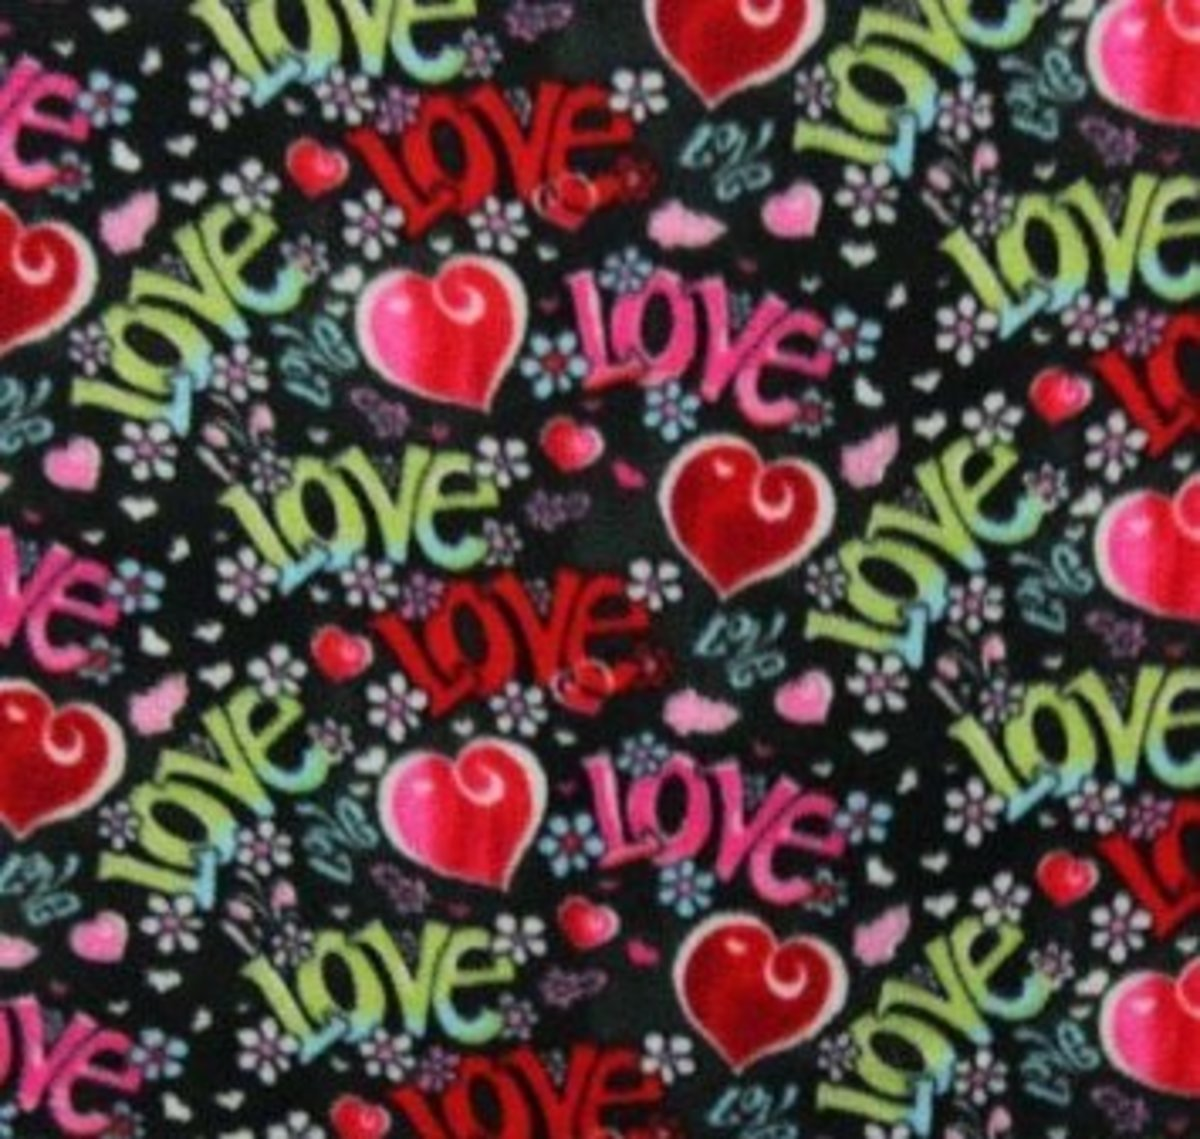 Love Hearts Fabric Photo